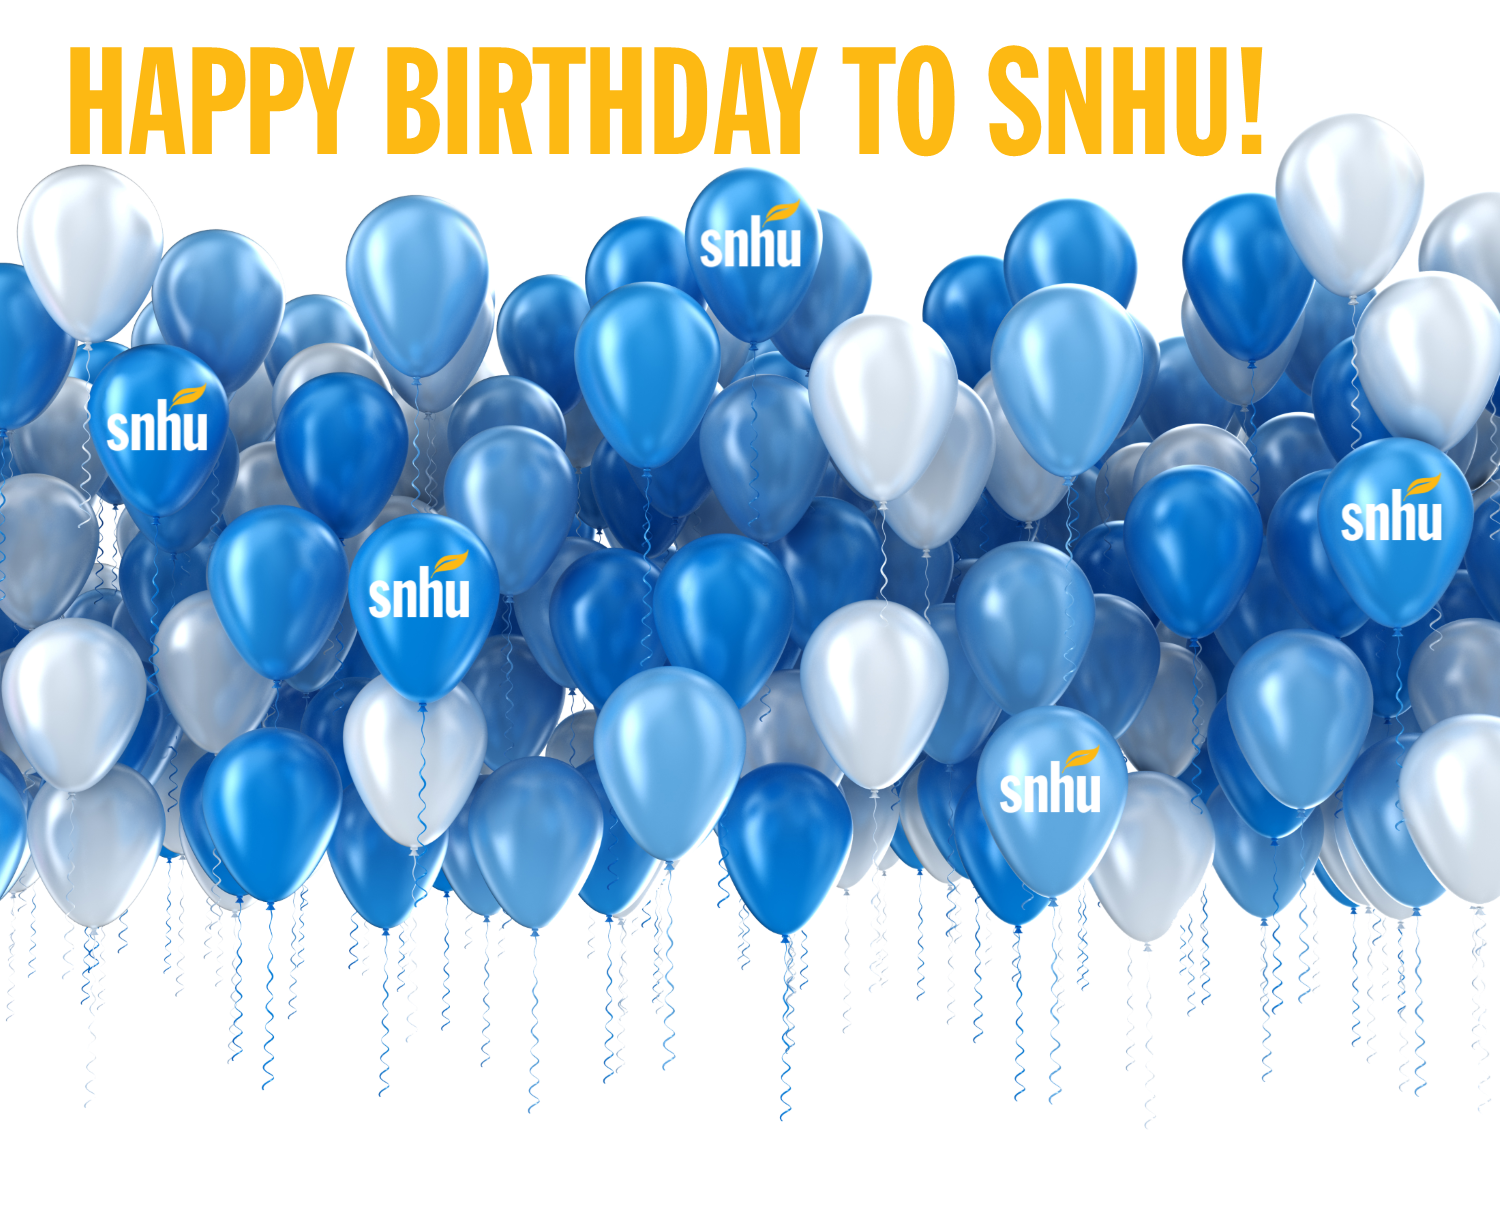 SNHU Founders Day - Happy Birthday to SNHU!